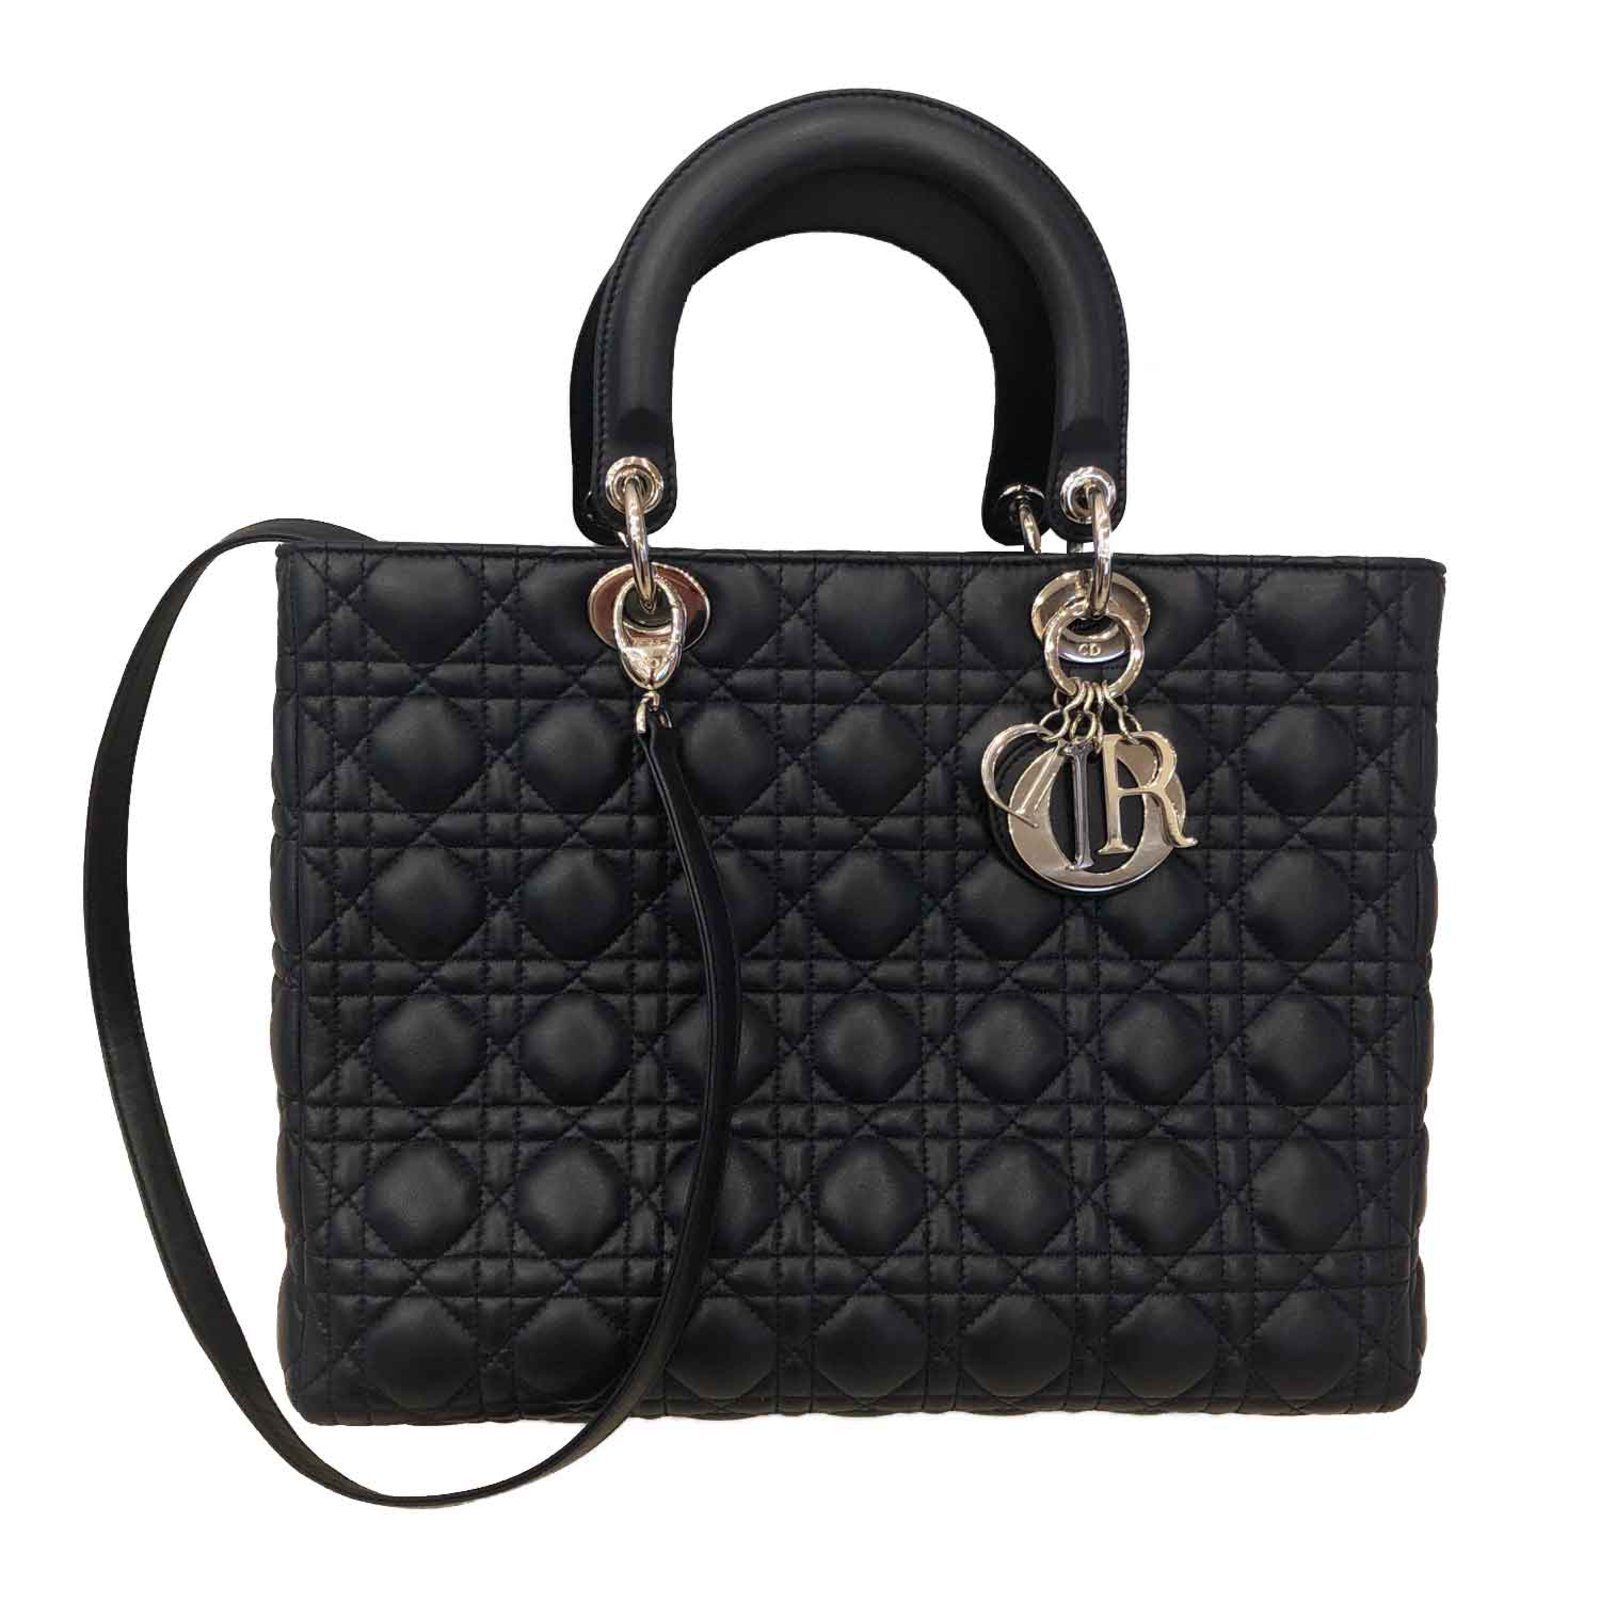 9970a36161d Christian Dior LADY DIOR Handbags Leather Navy blue ref.105889 ...